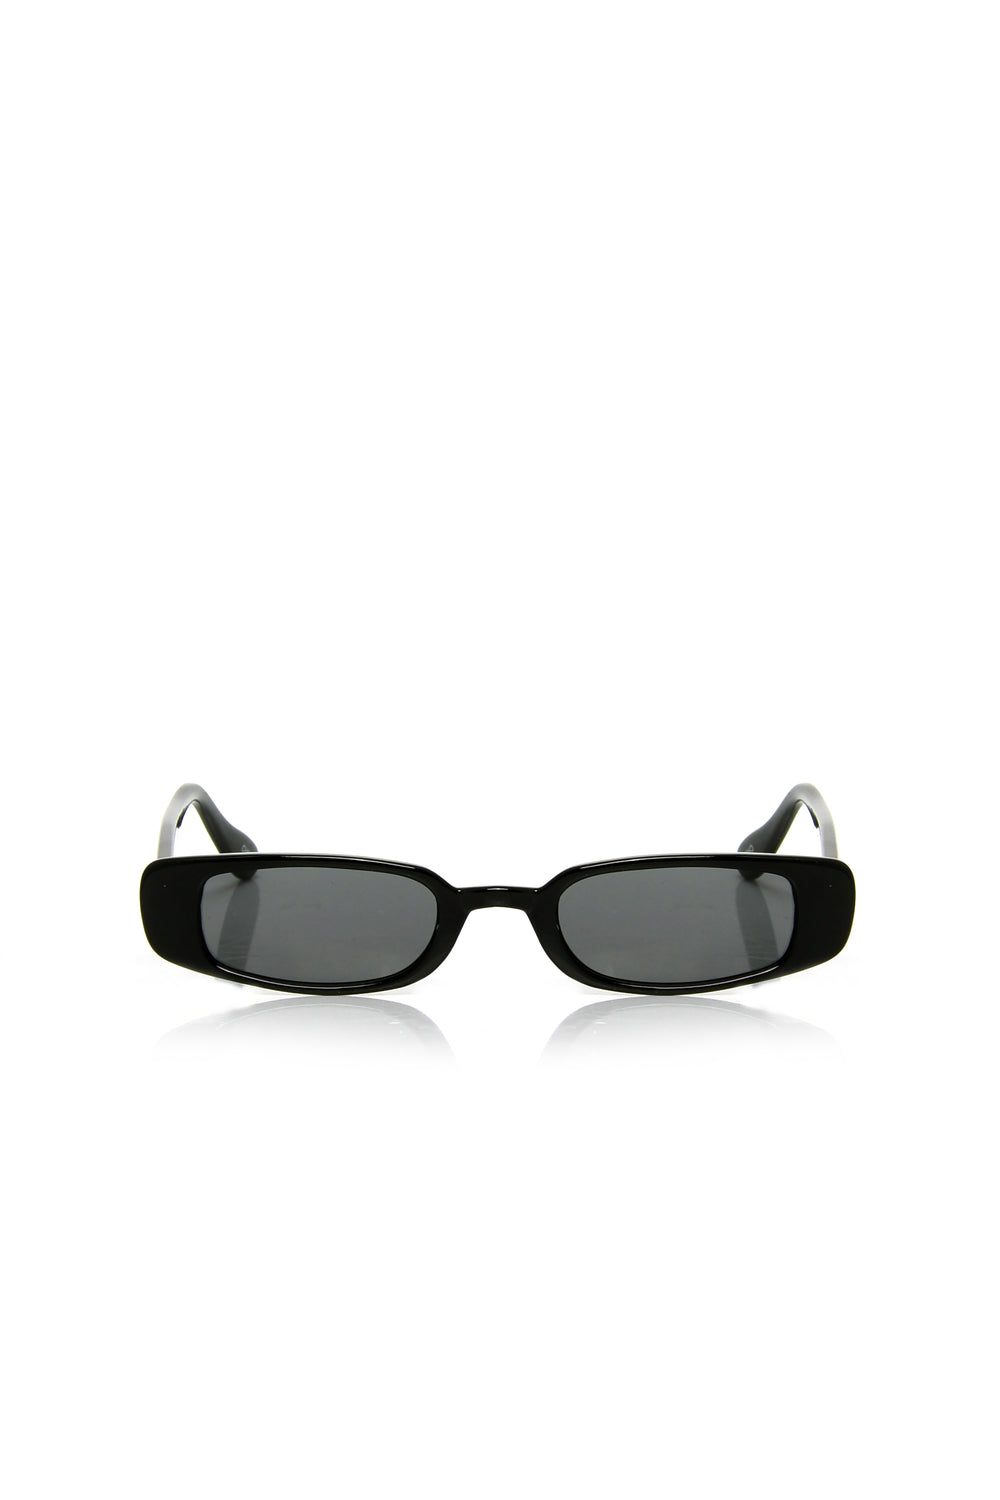 Lucca Mini Square Sunglasses - Black/Black